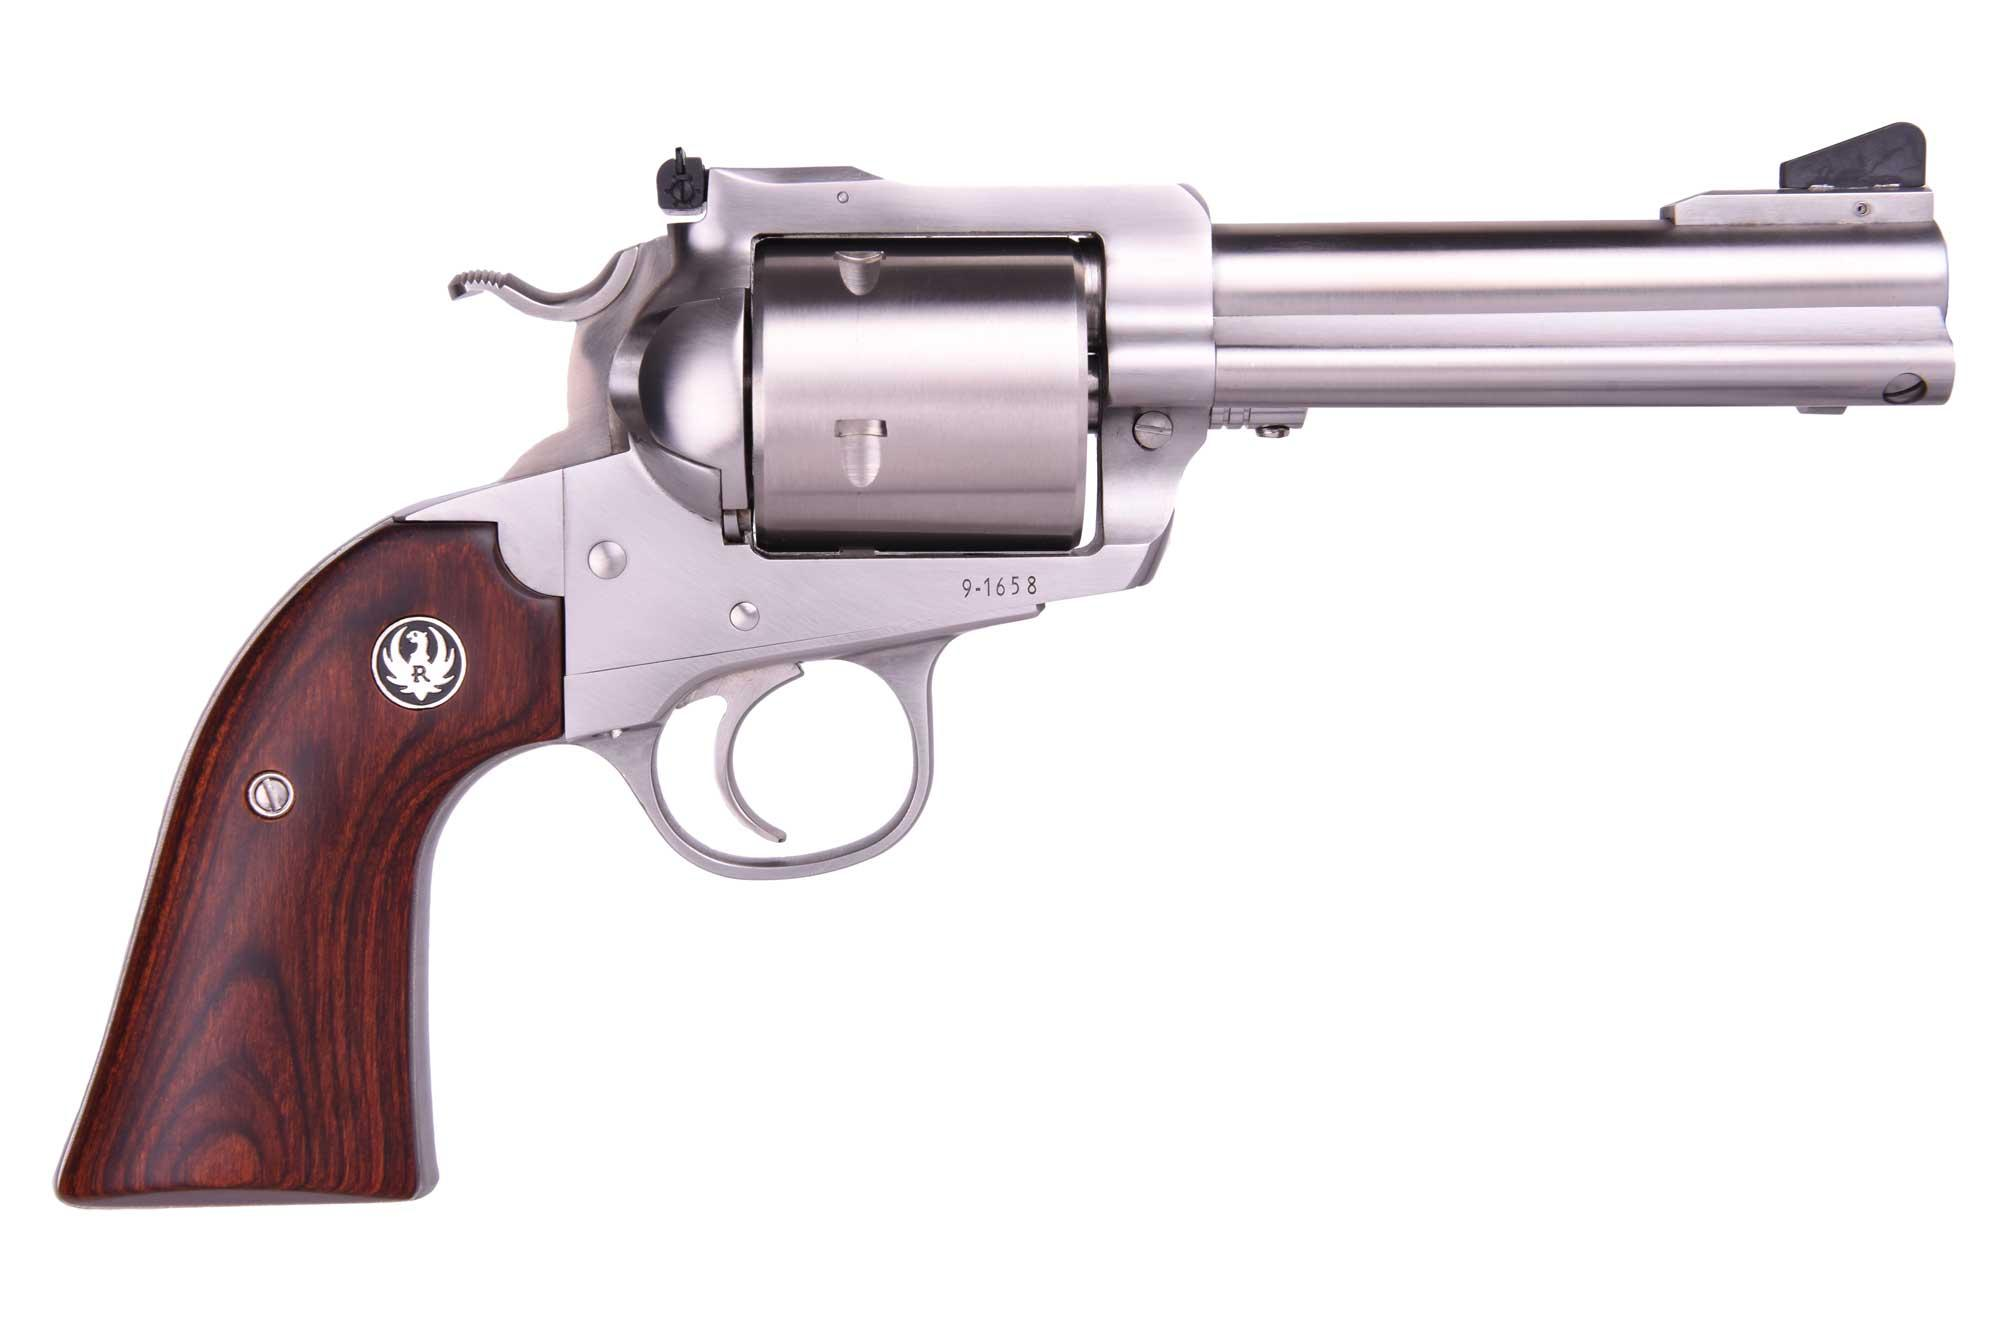 BISLEY 454 CASULL SS 4-5/8 AS - 0873 WOOD GRIPS / UNFLUTED CYL